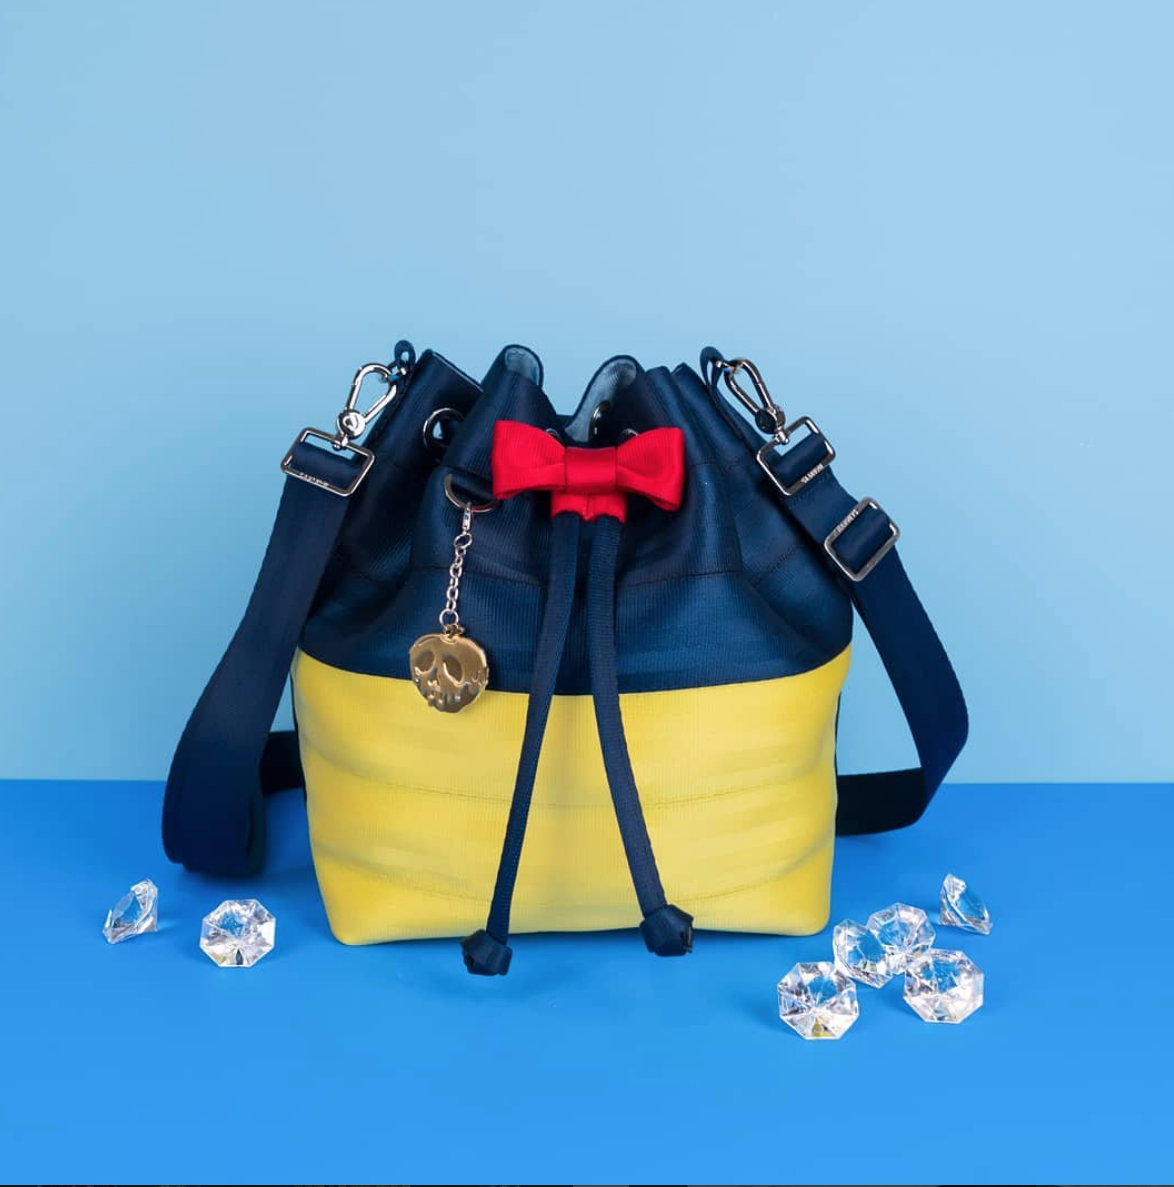 Harveys Seatbelt Bags Debuts Brand New Snow White Collection — THE ... 197f781c42